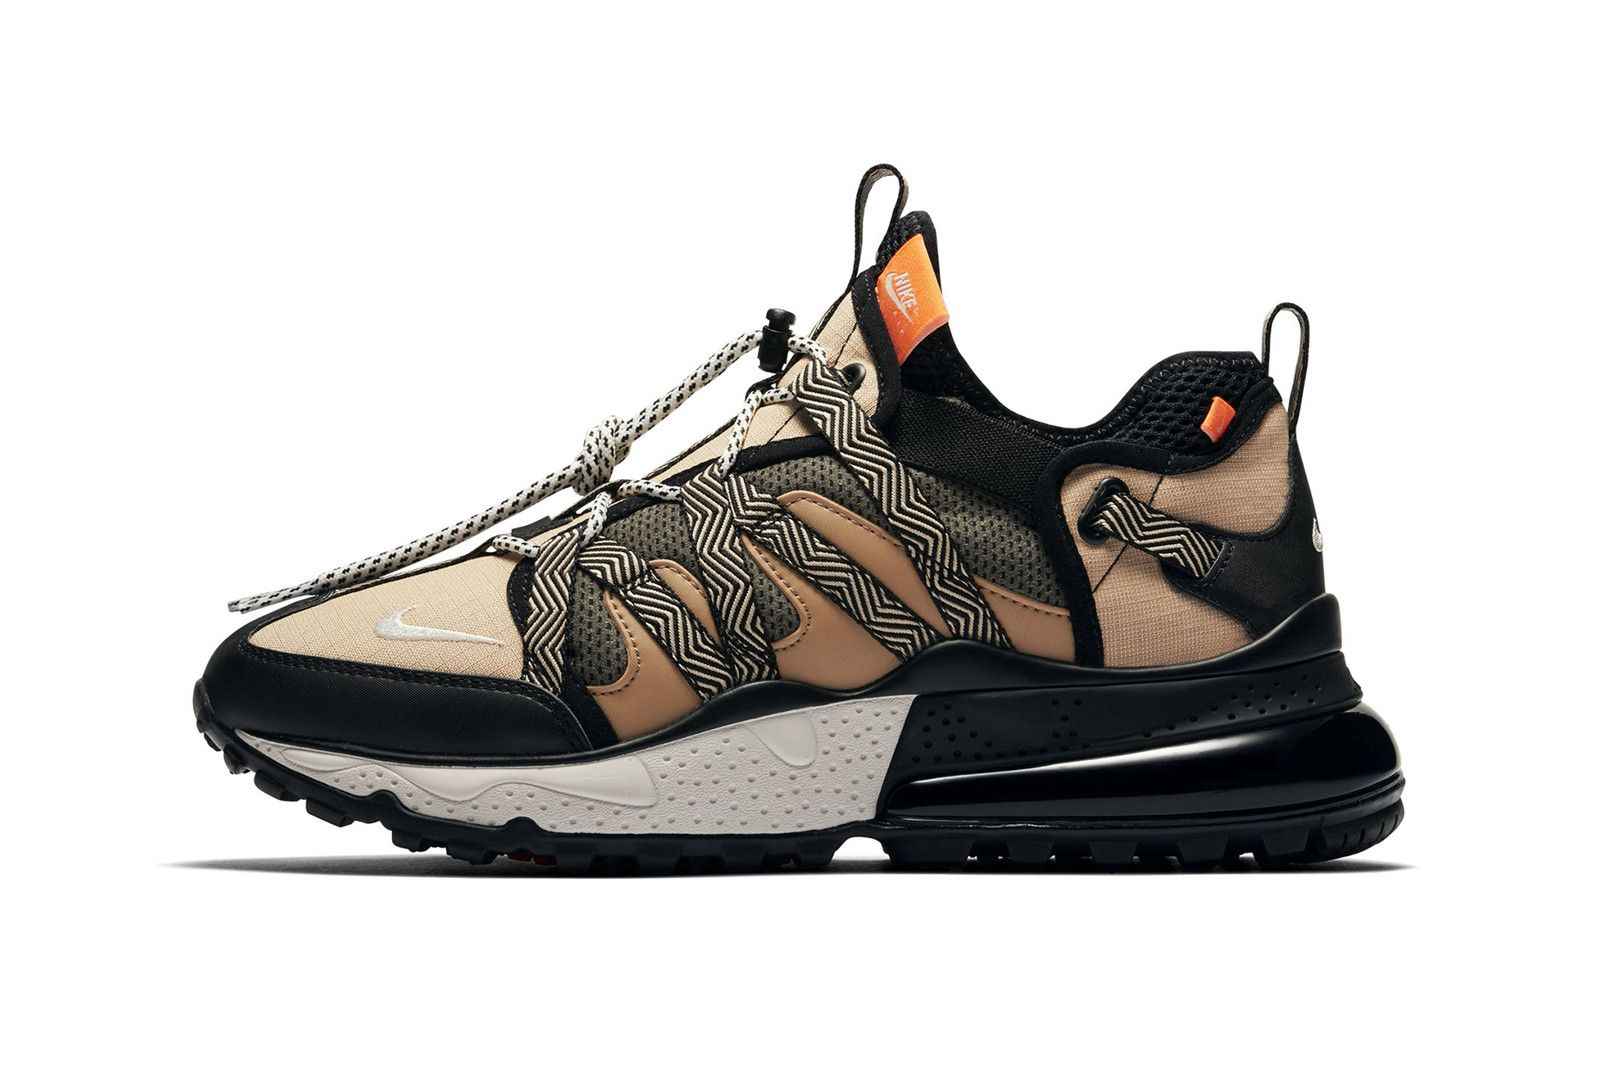 Nike Air Max 270 Bowfin Release Details & Colors ...